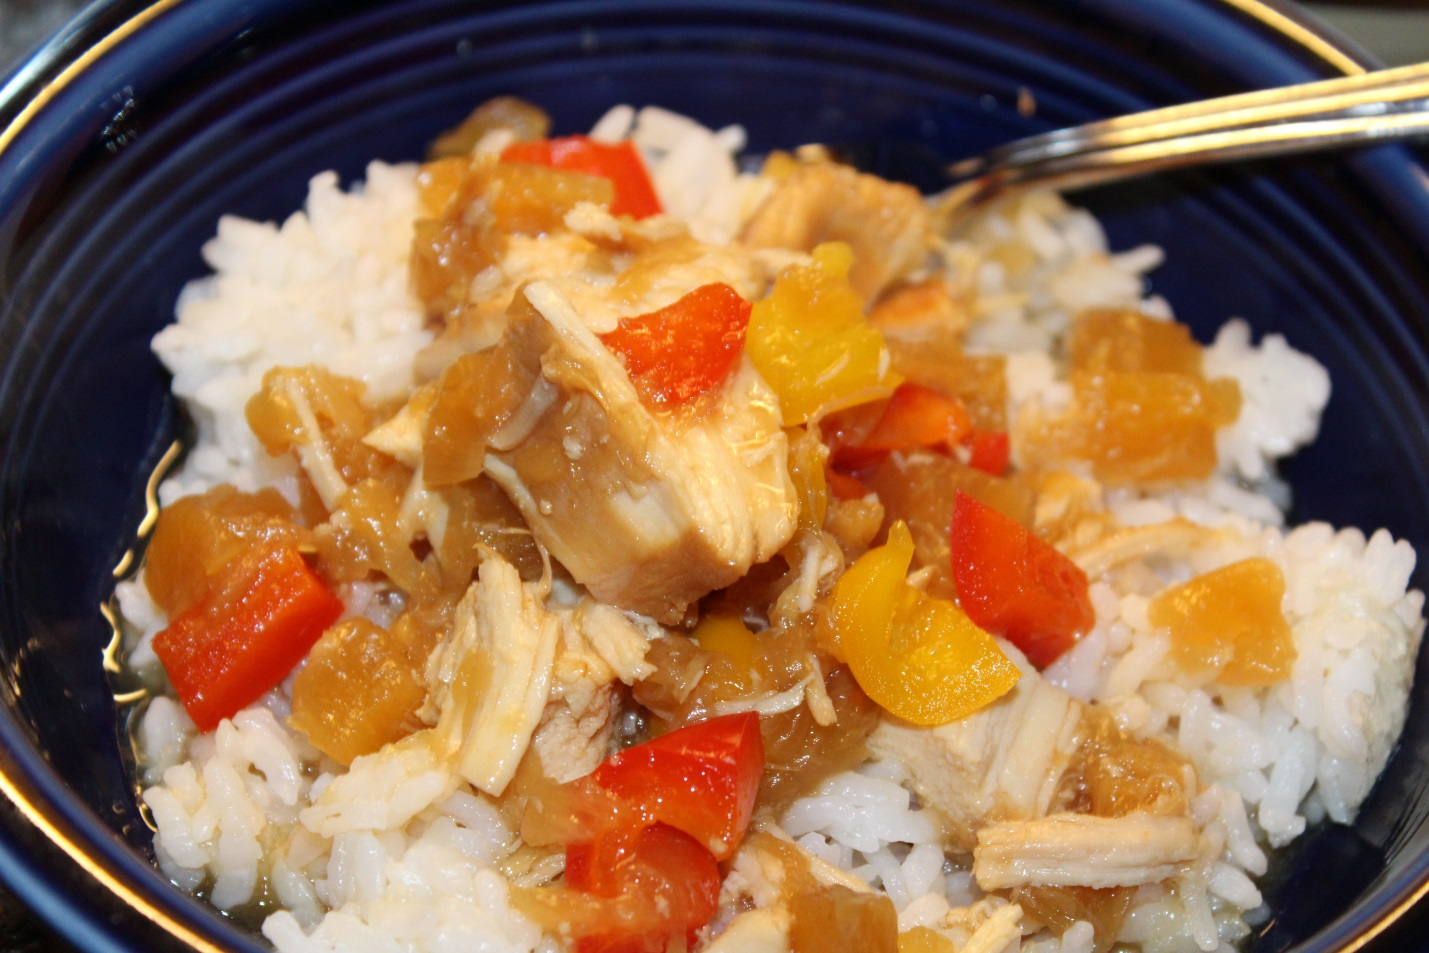 Evie's Slow Cooker Hawaiian Chicken